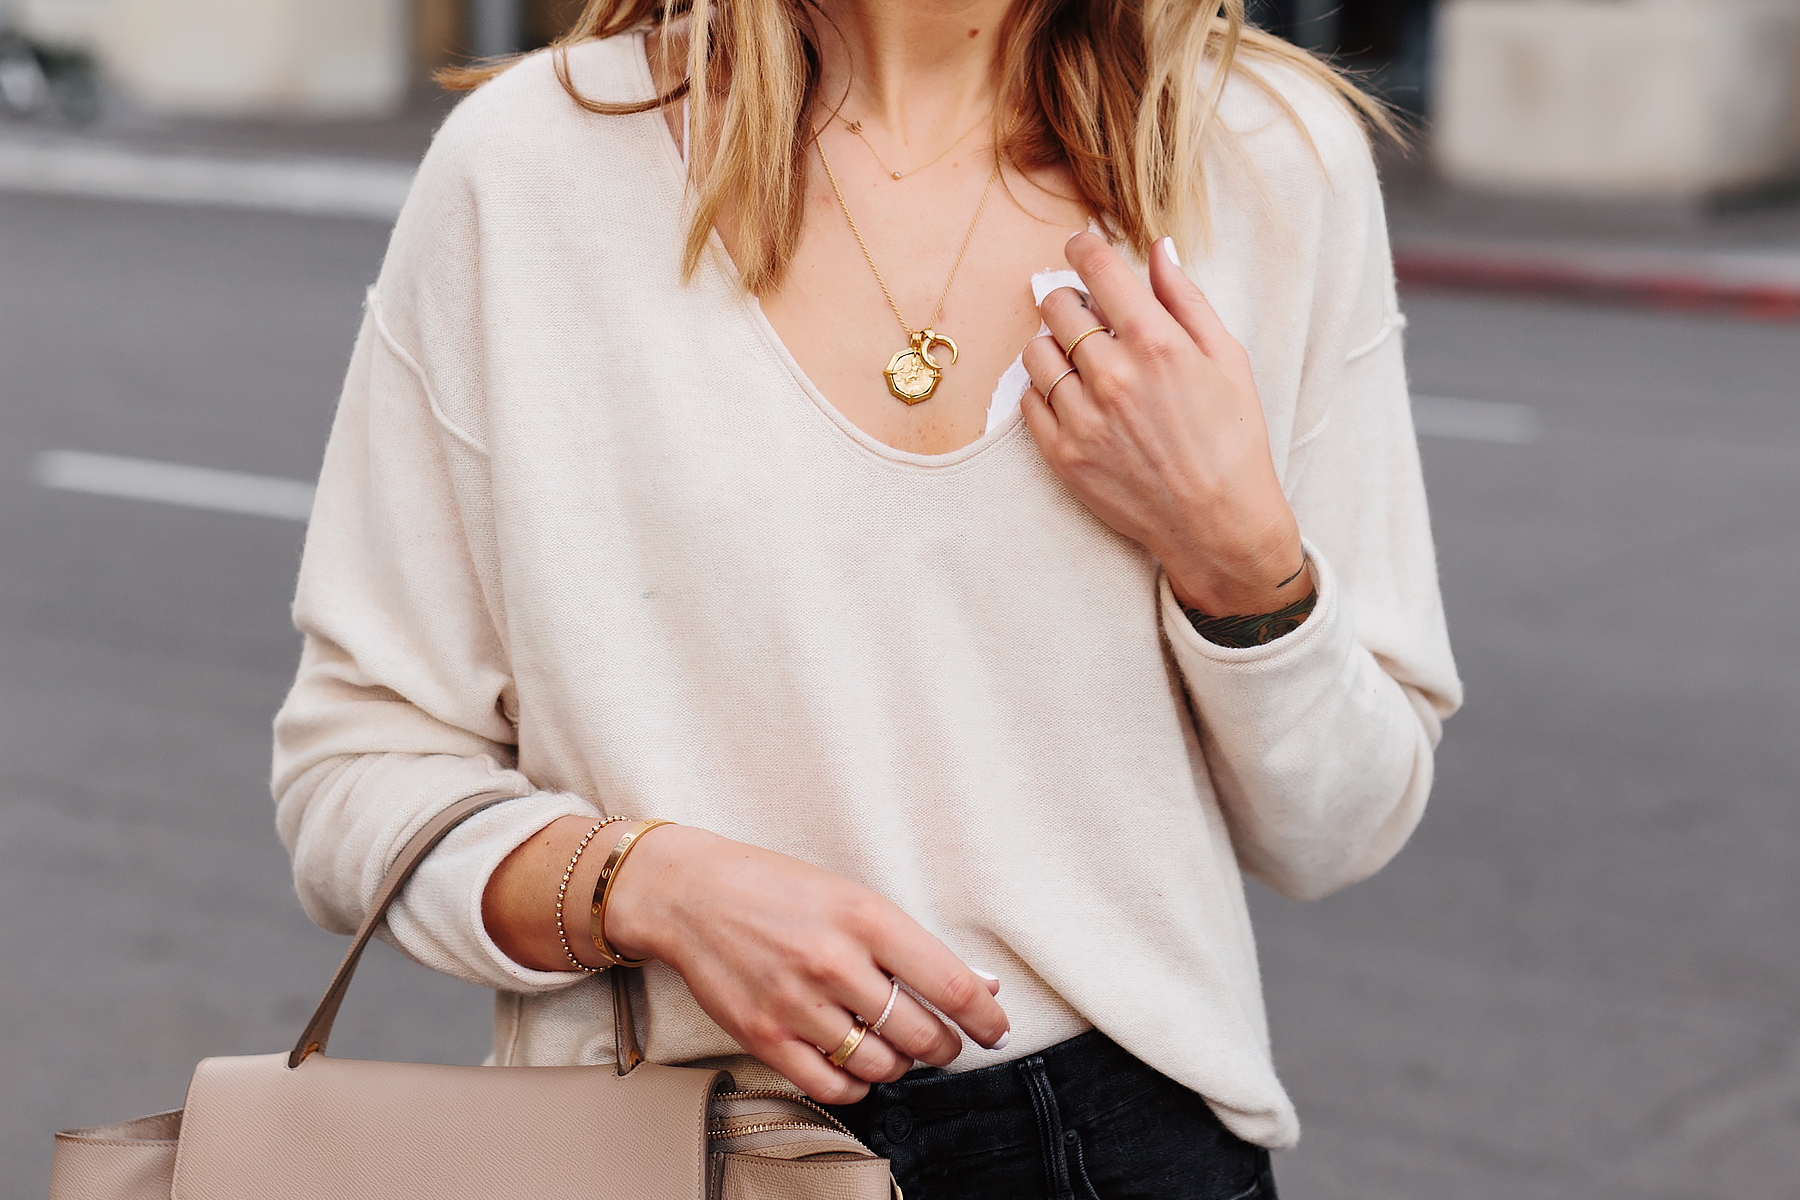 Blonde Woman Wearing Beige Sweater White Lace Bralette Missoma Gold Necklaces Cartier Bracelet Dainty Gold Jewelry Fashion Jackson San Diego Fashion Blogger Street Style